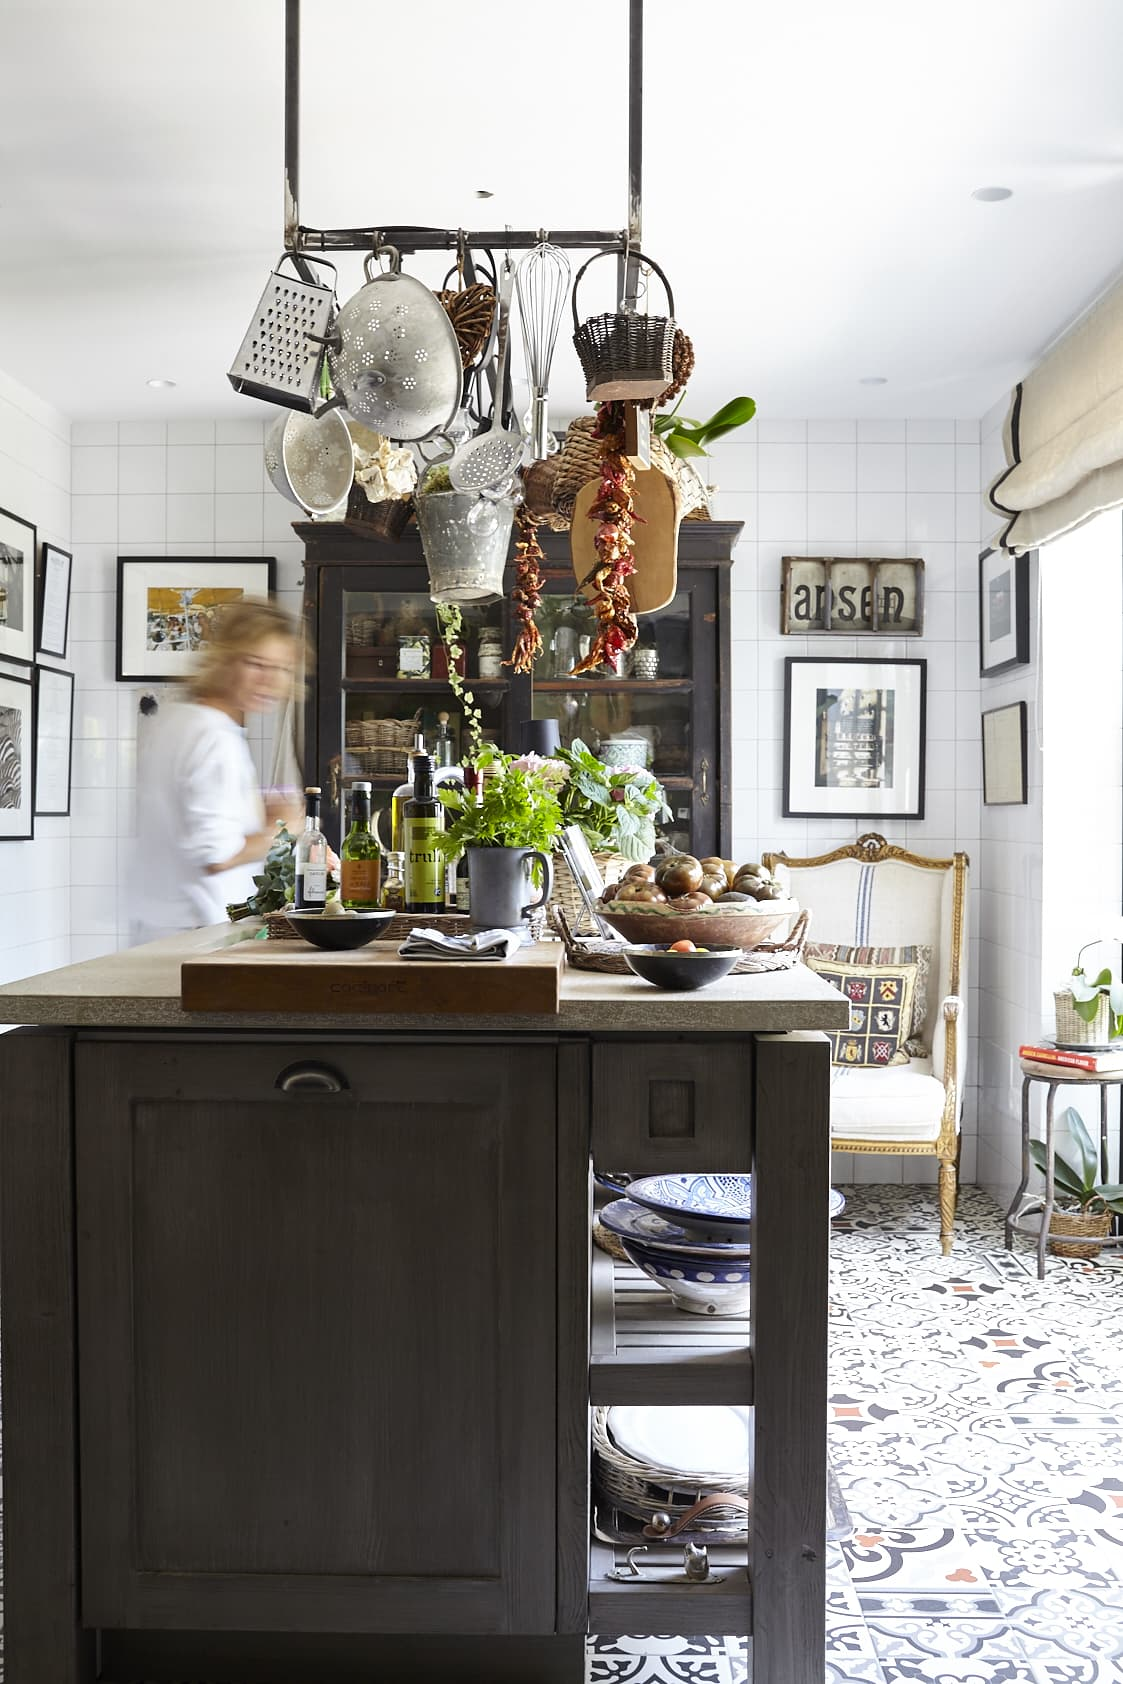 In the lower part of the kitchen, which used to be a garage, the kitchen island plays the main role. It was built by carpenters in Mallorca and features a sink as well as room for both cooking and storage. The Moroccan ceramic tiles on the floor and the classic white tiles leading all the way up to the ceiling are reminiscent of a tavern.